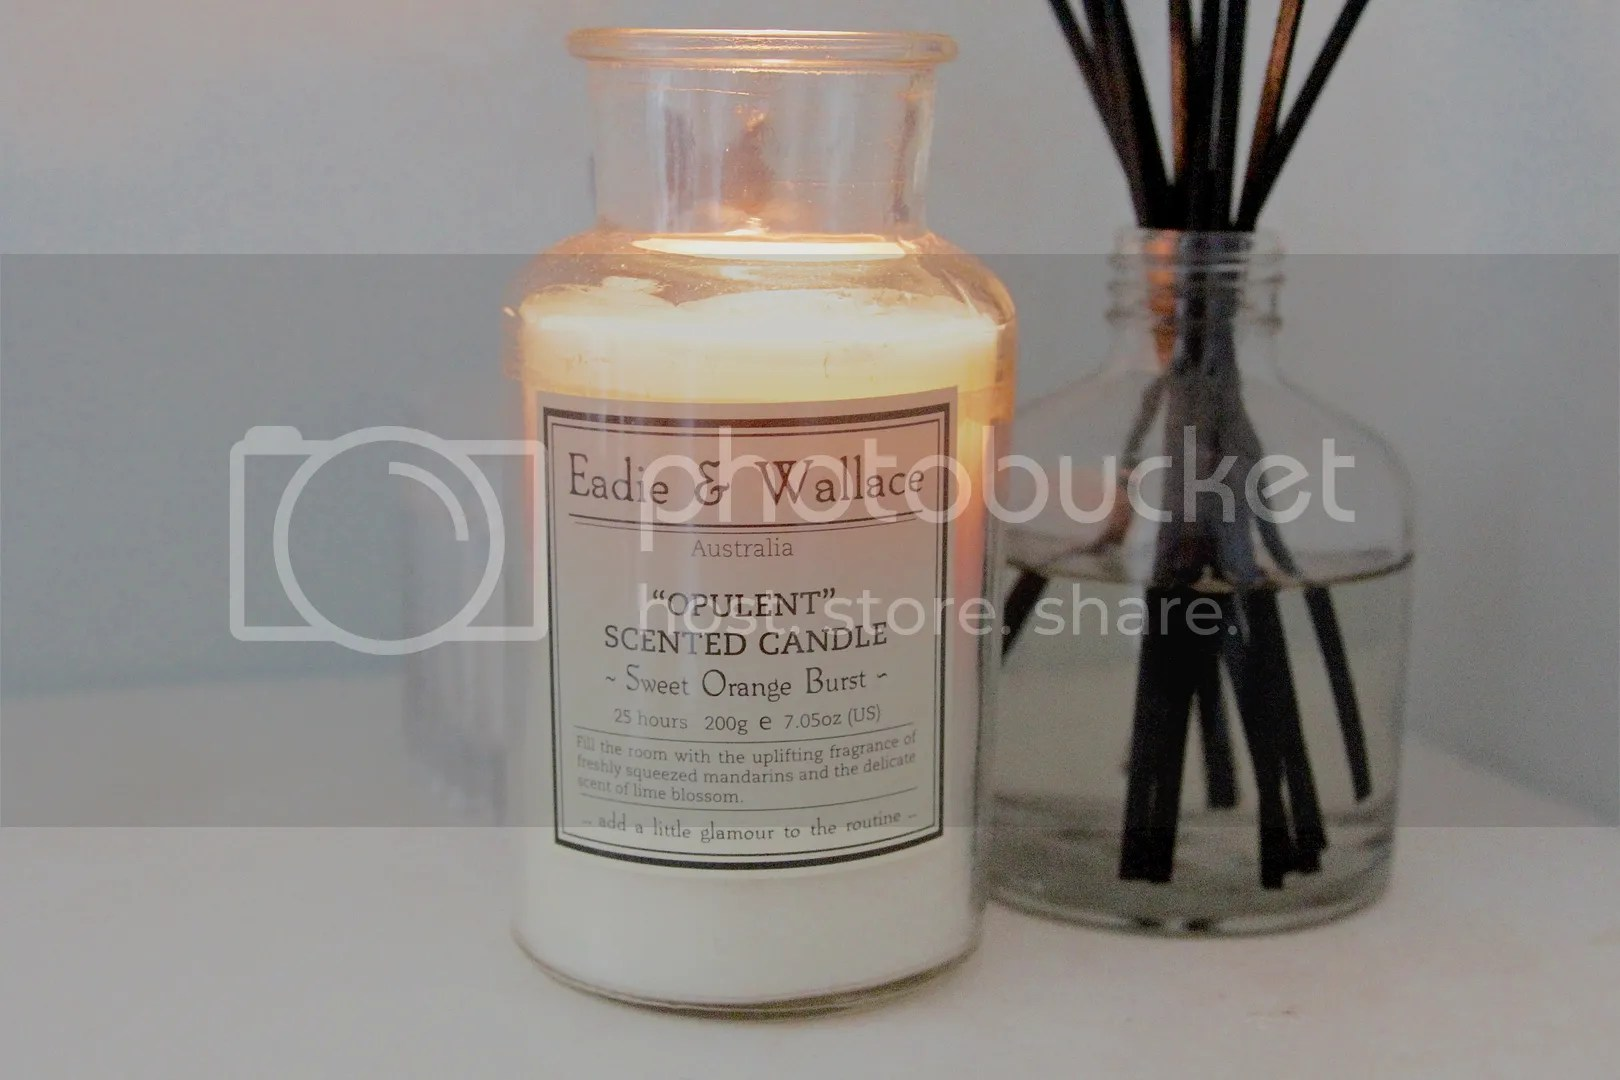 Orange oil scented candle and vanilla scented room diffuser